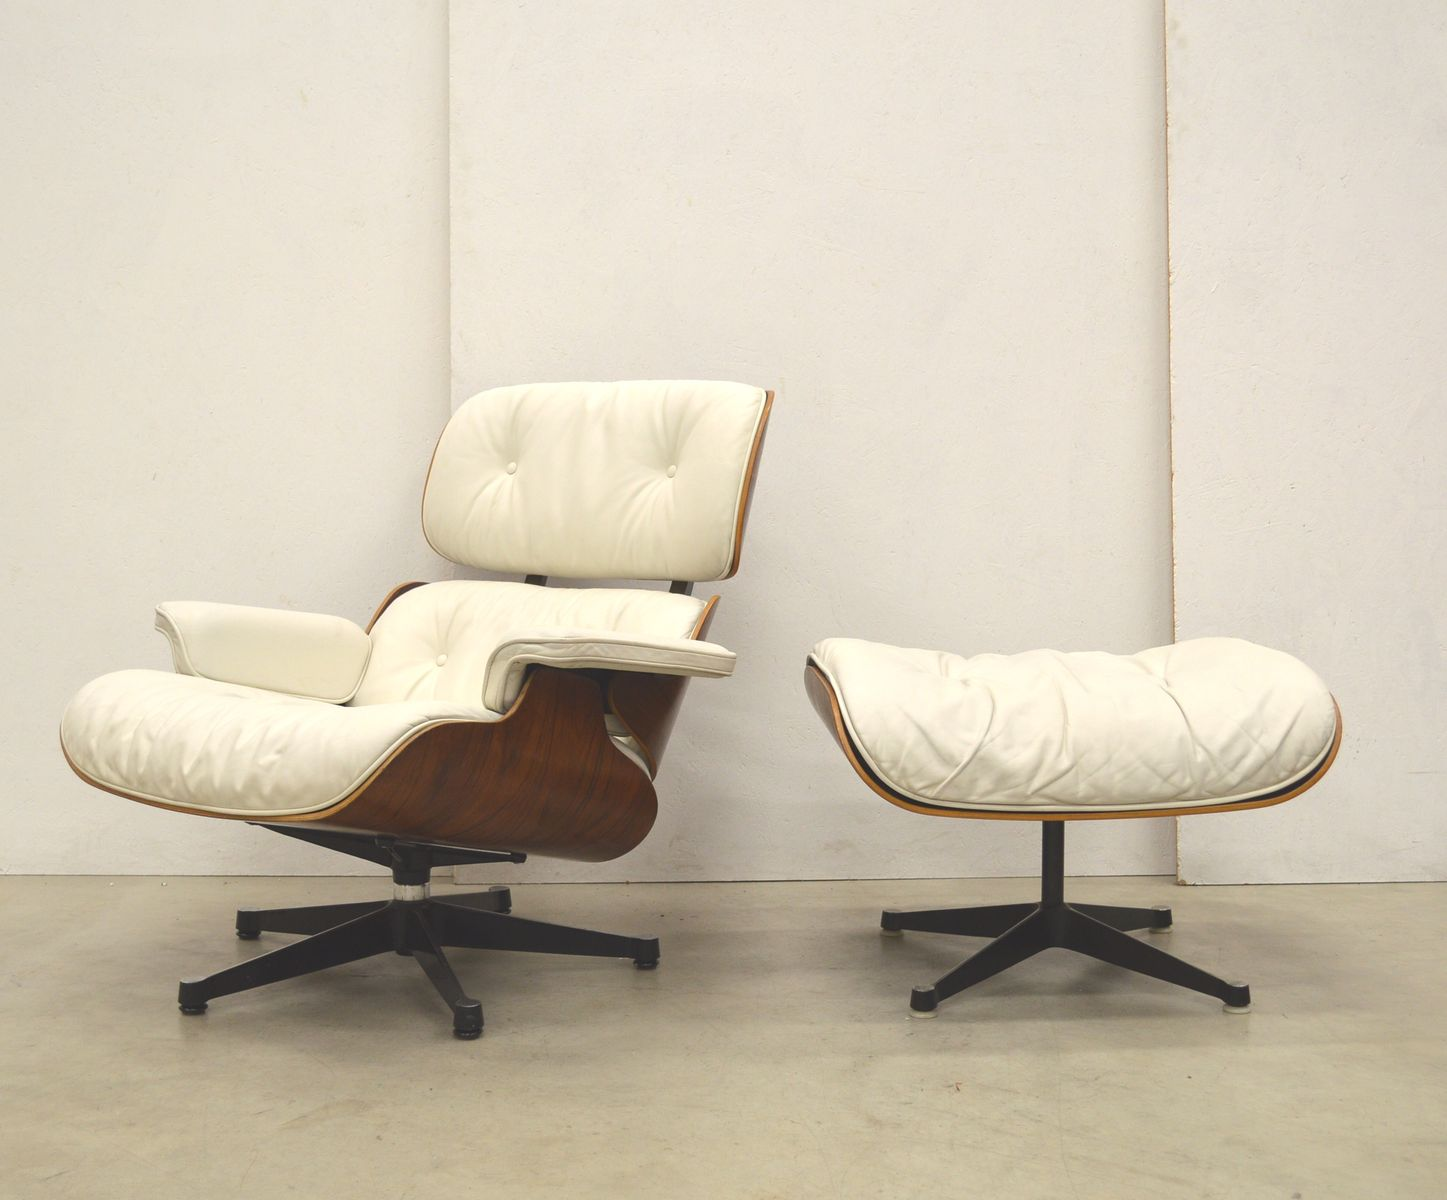 Lounge Chair Ottoman by Ray Charles Eames for Herman Miller